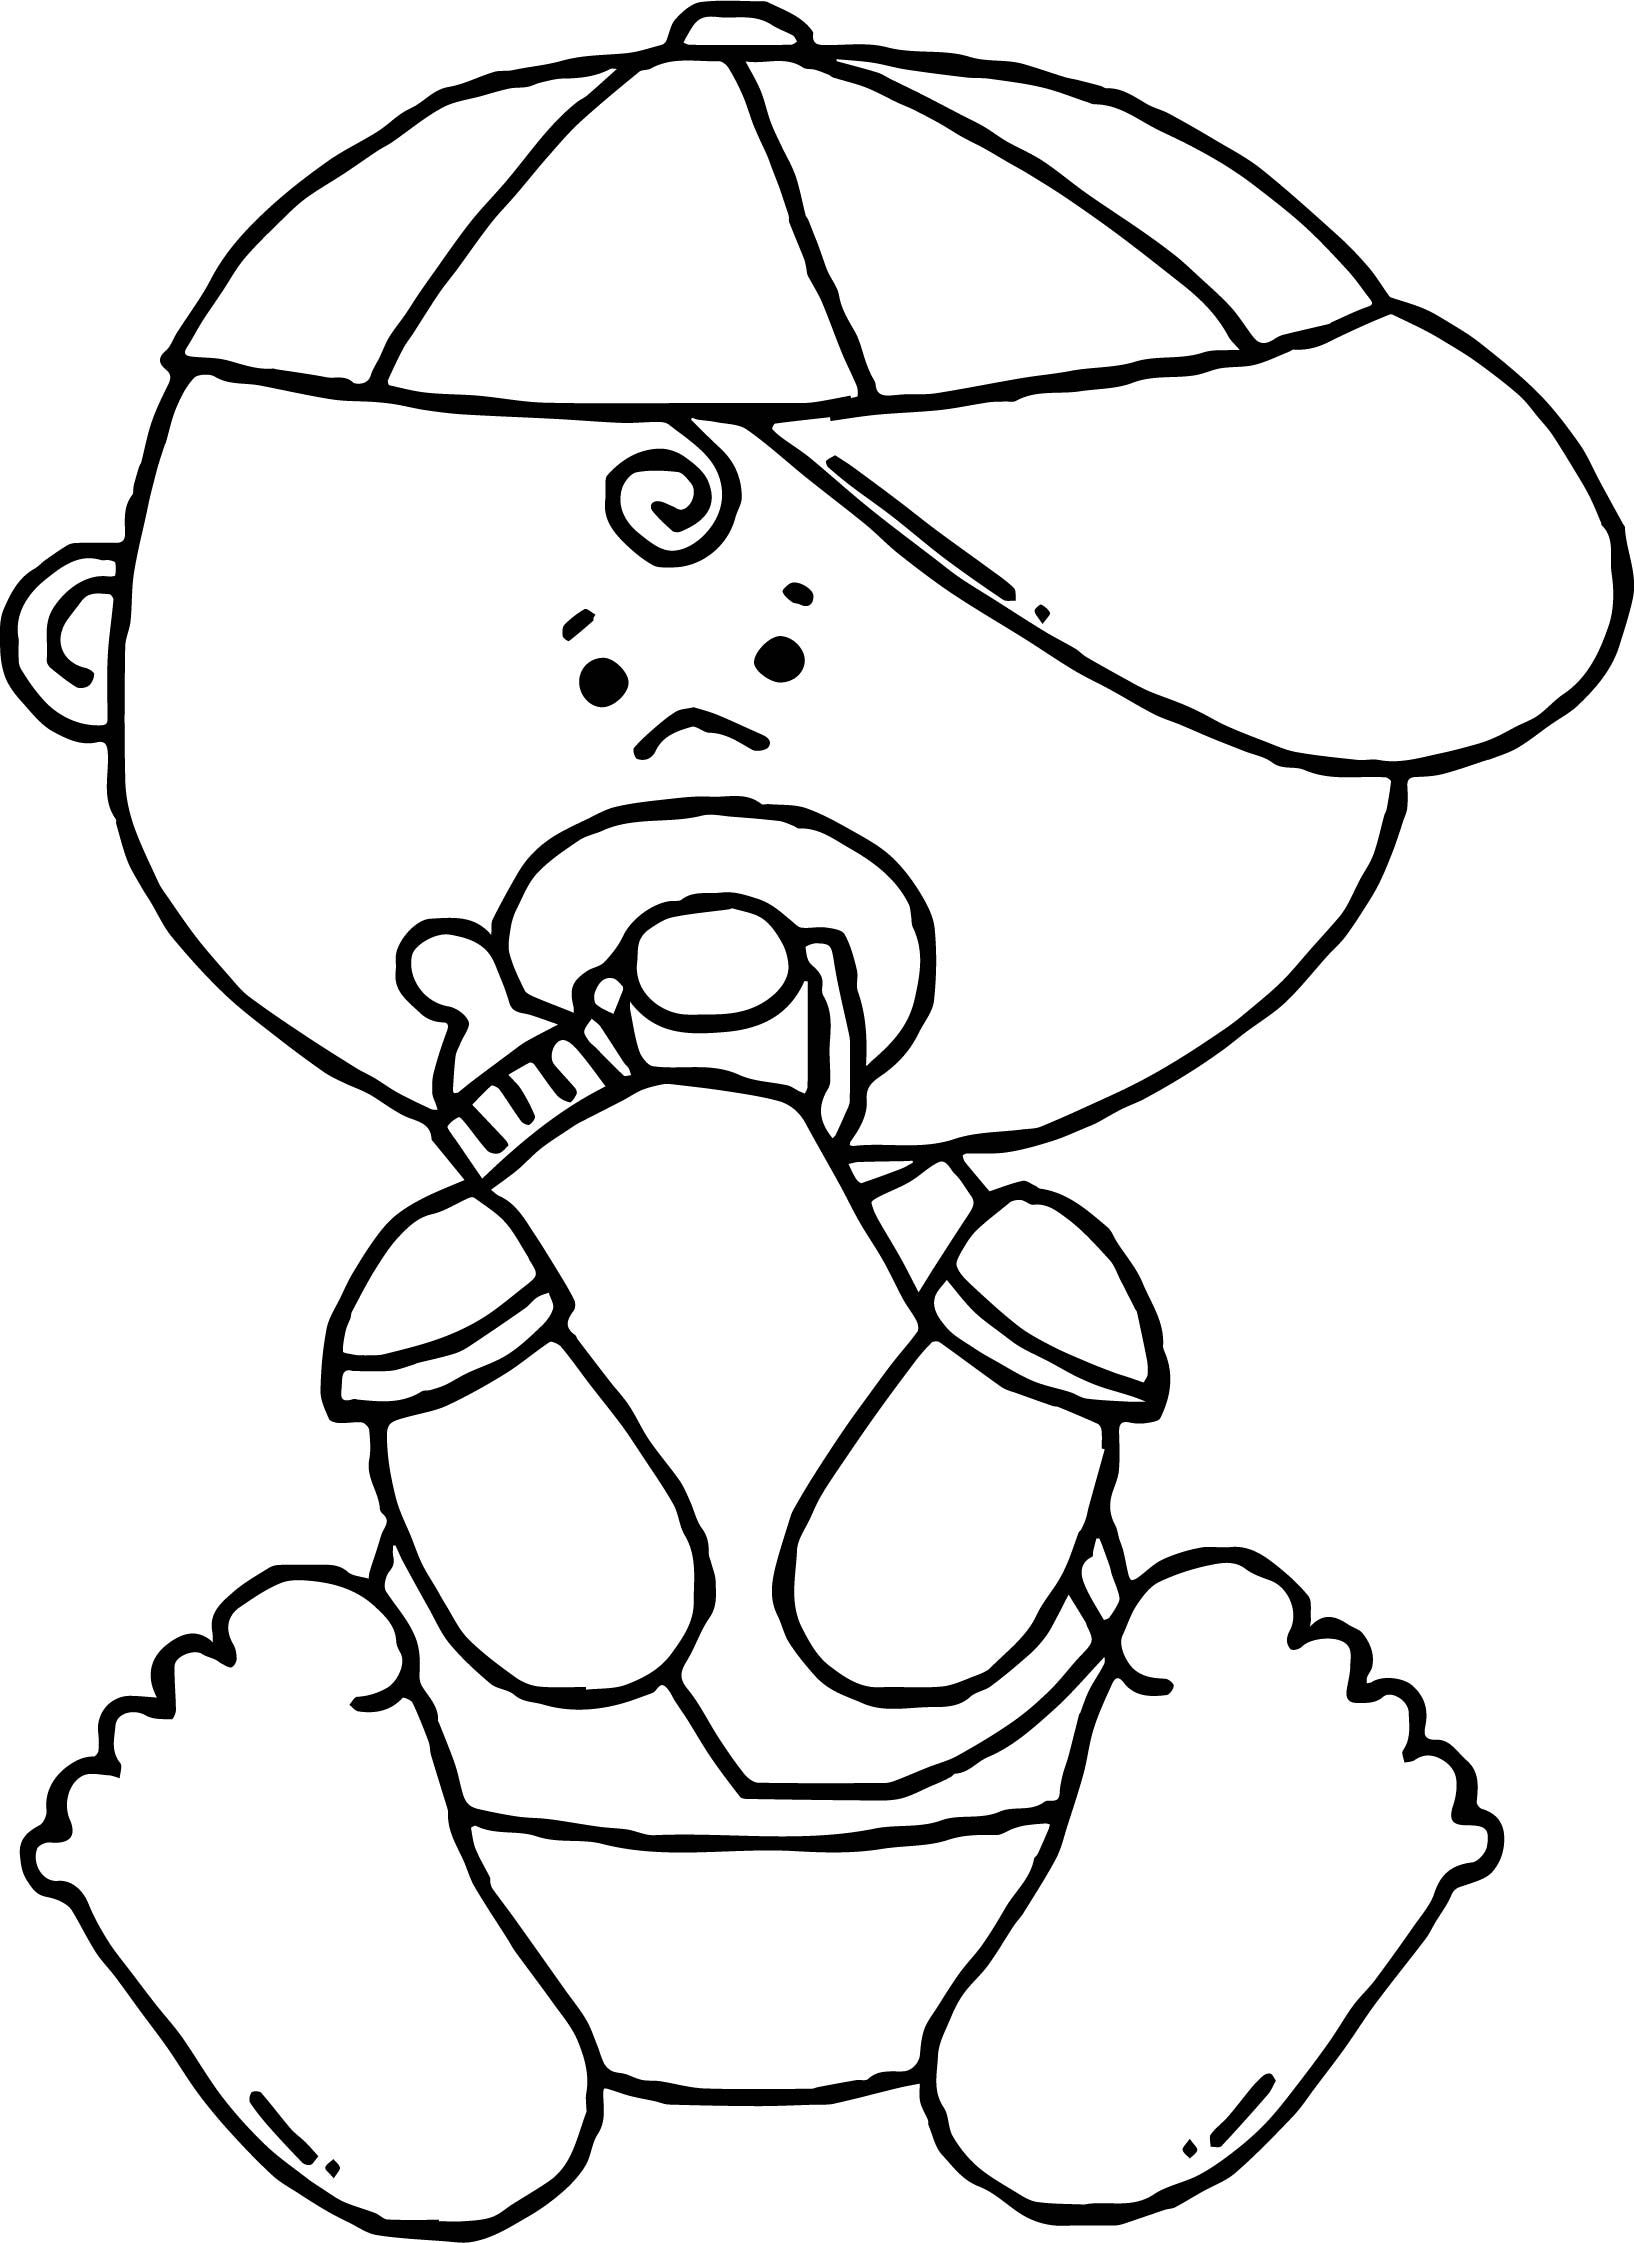 Nice Baby Boy Drink Milk Coloring Page Drink Milk Baby Boy